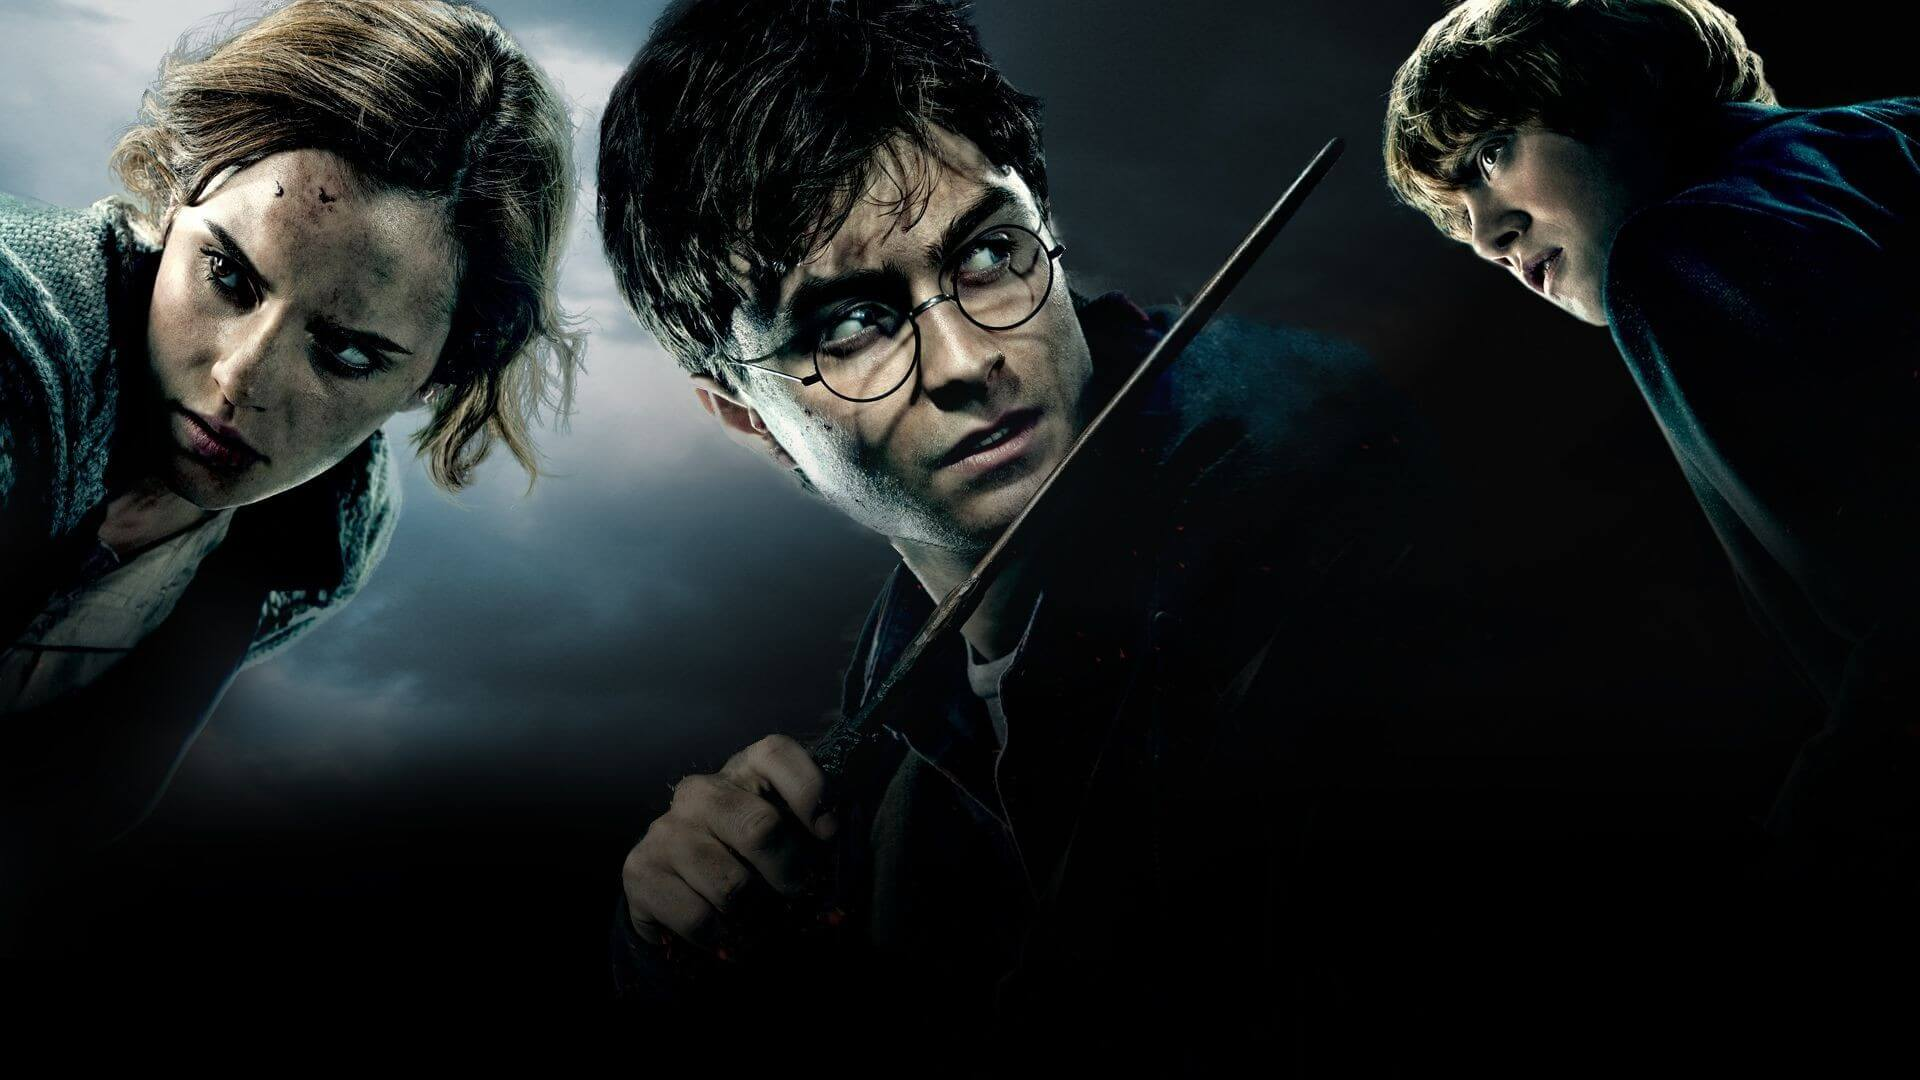 Harry Potter Returning to Theaters for 20th Anniversary